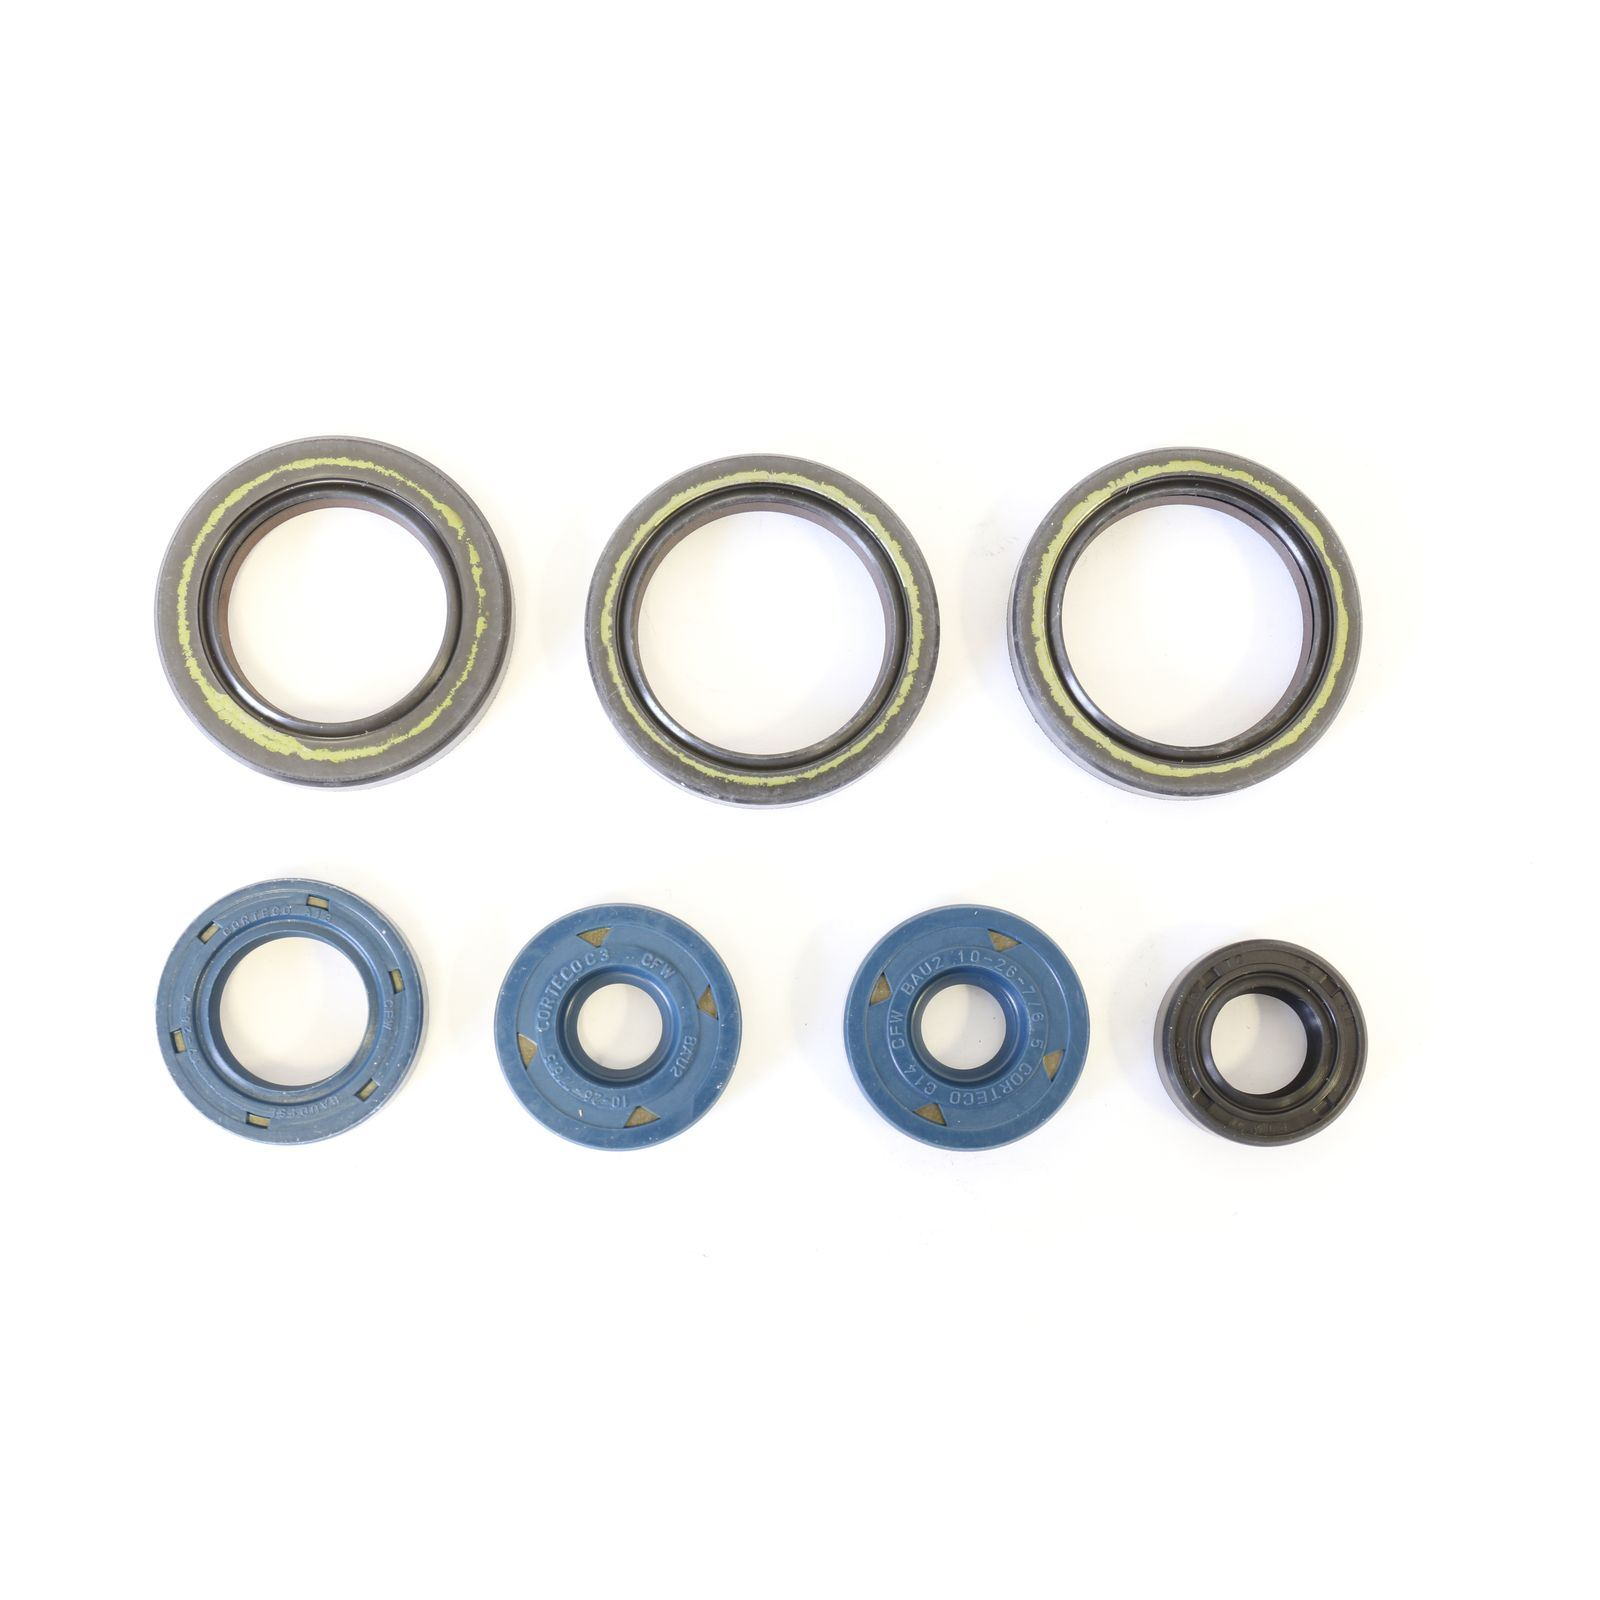 Engine oil seal kit Athena Aprilia RS 125 97-12 Tuono RX SX MX Rotax 122 Classic